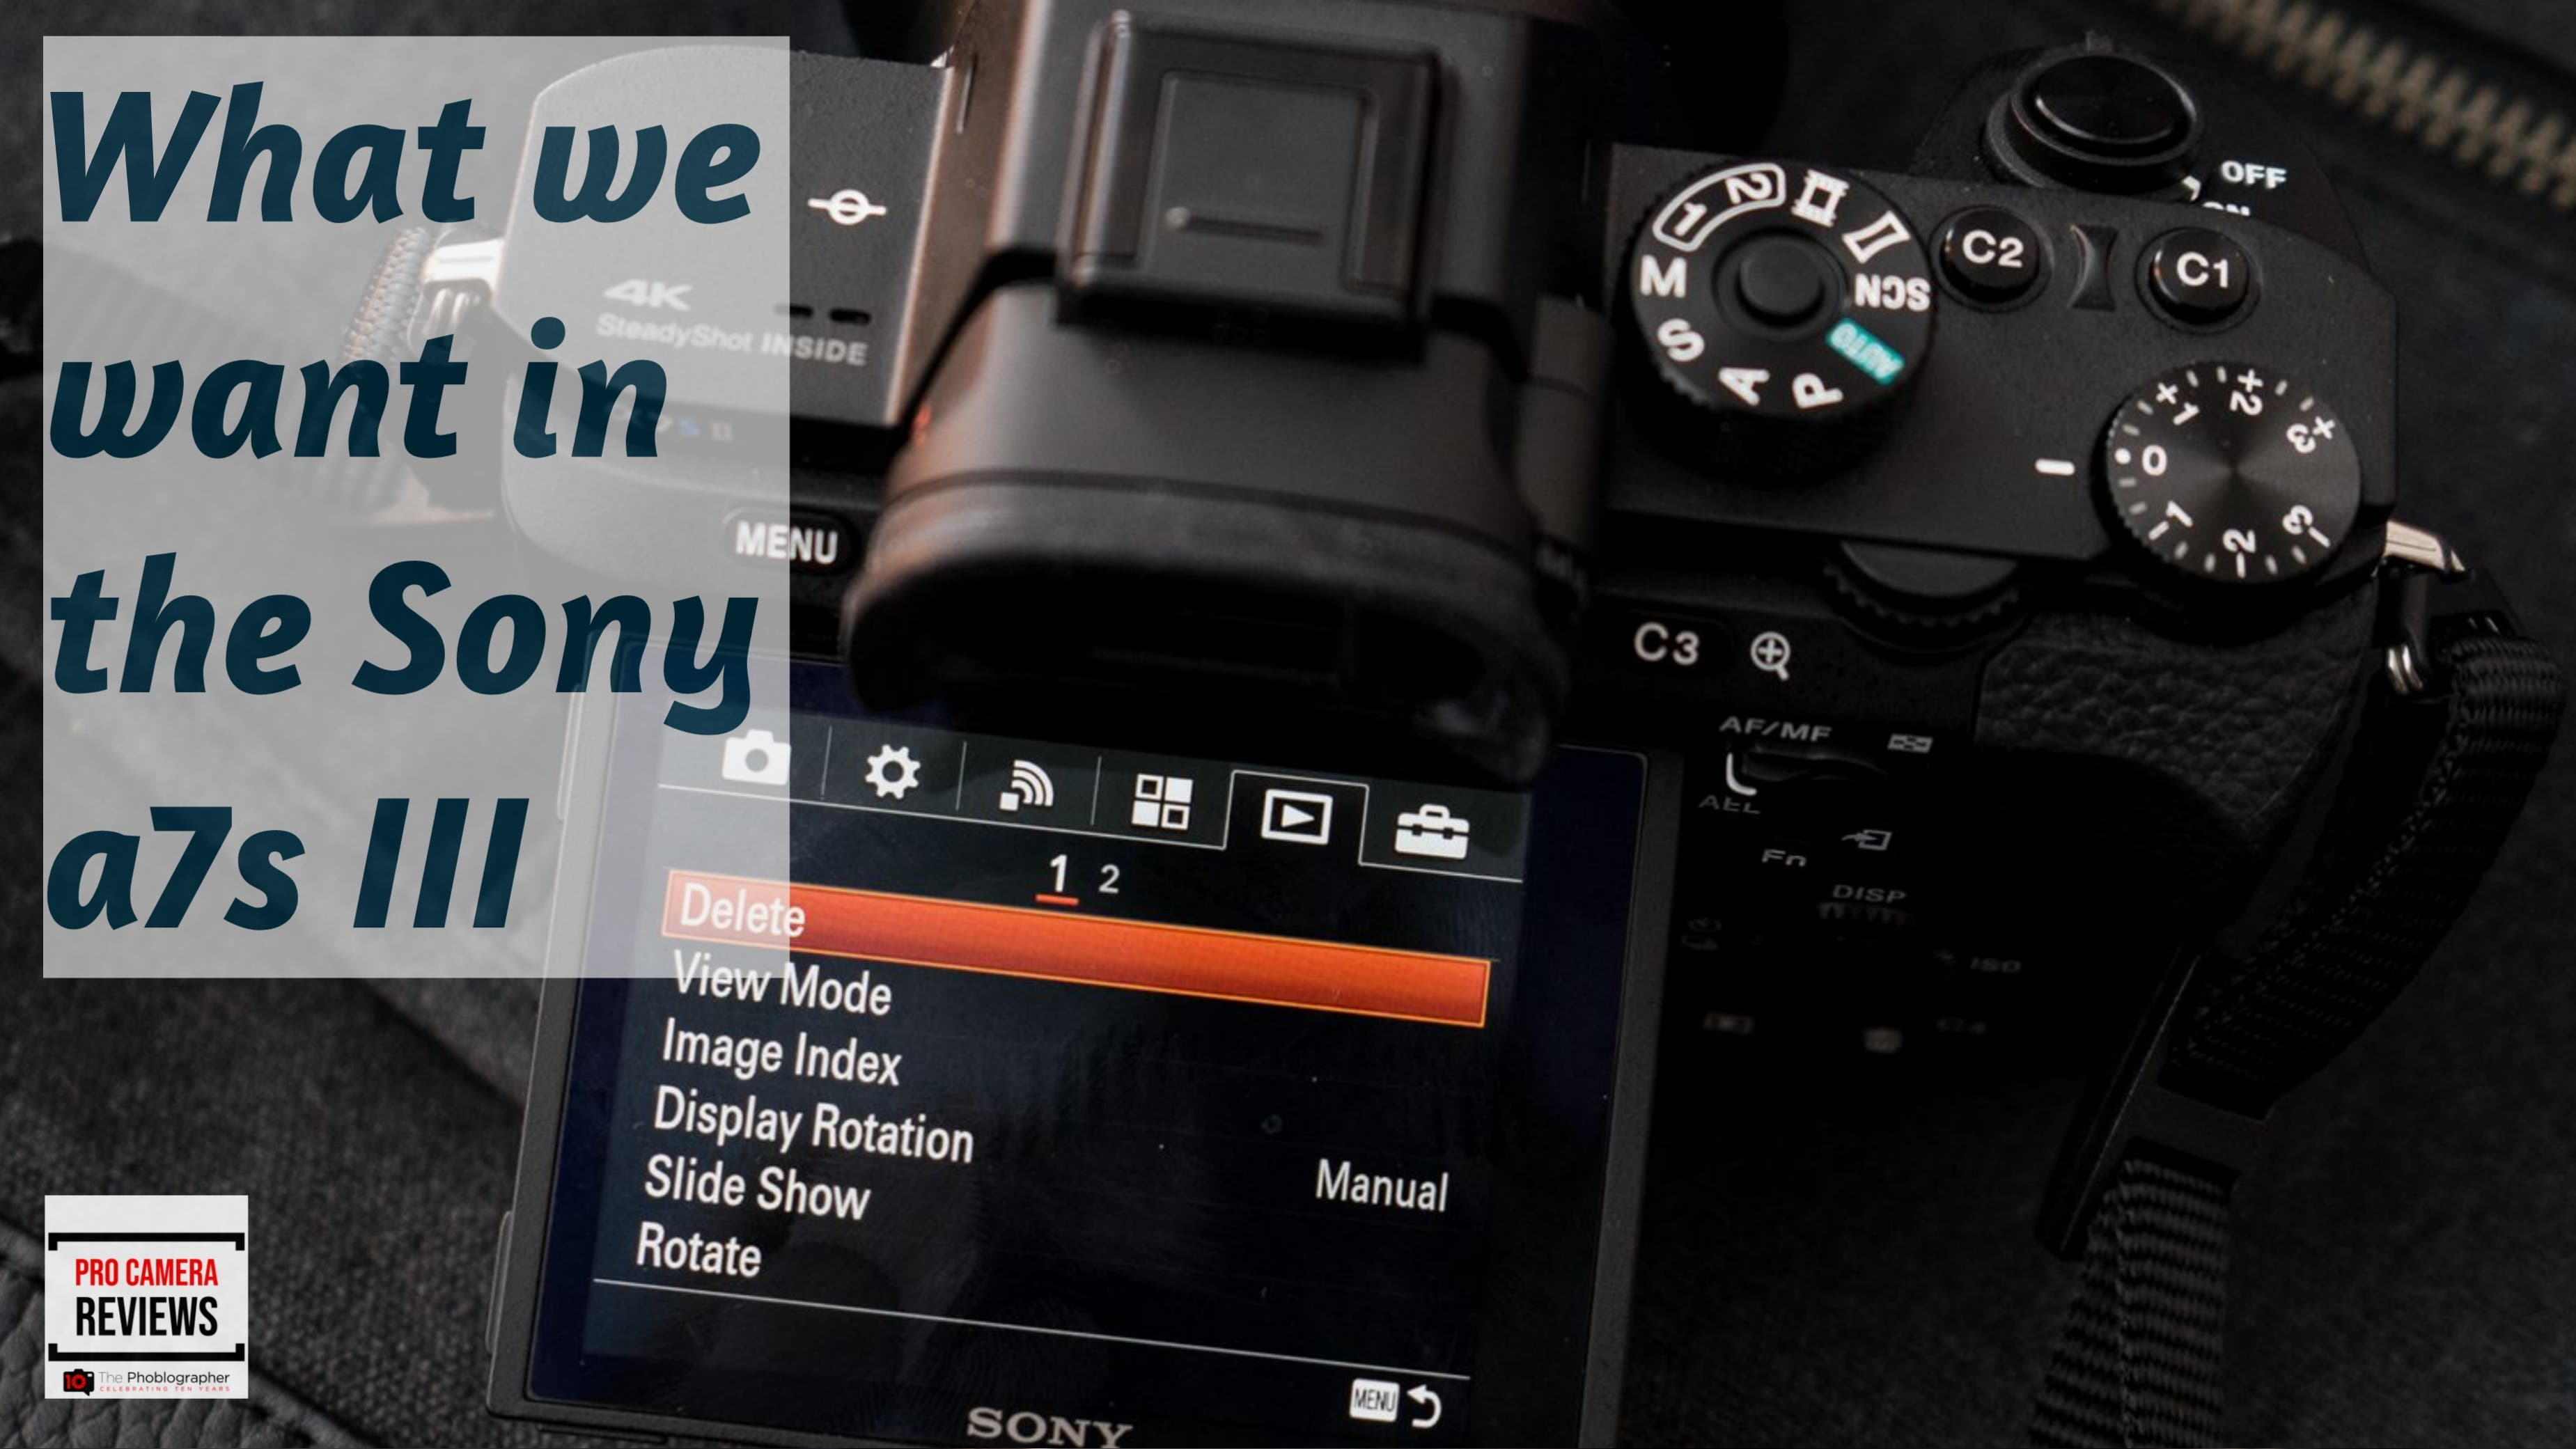 Video: What We Want to See In the Sony a7s III